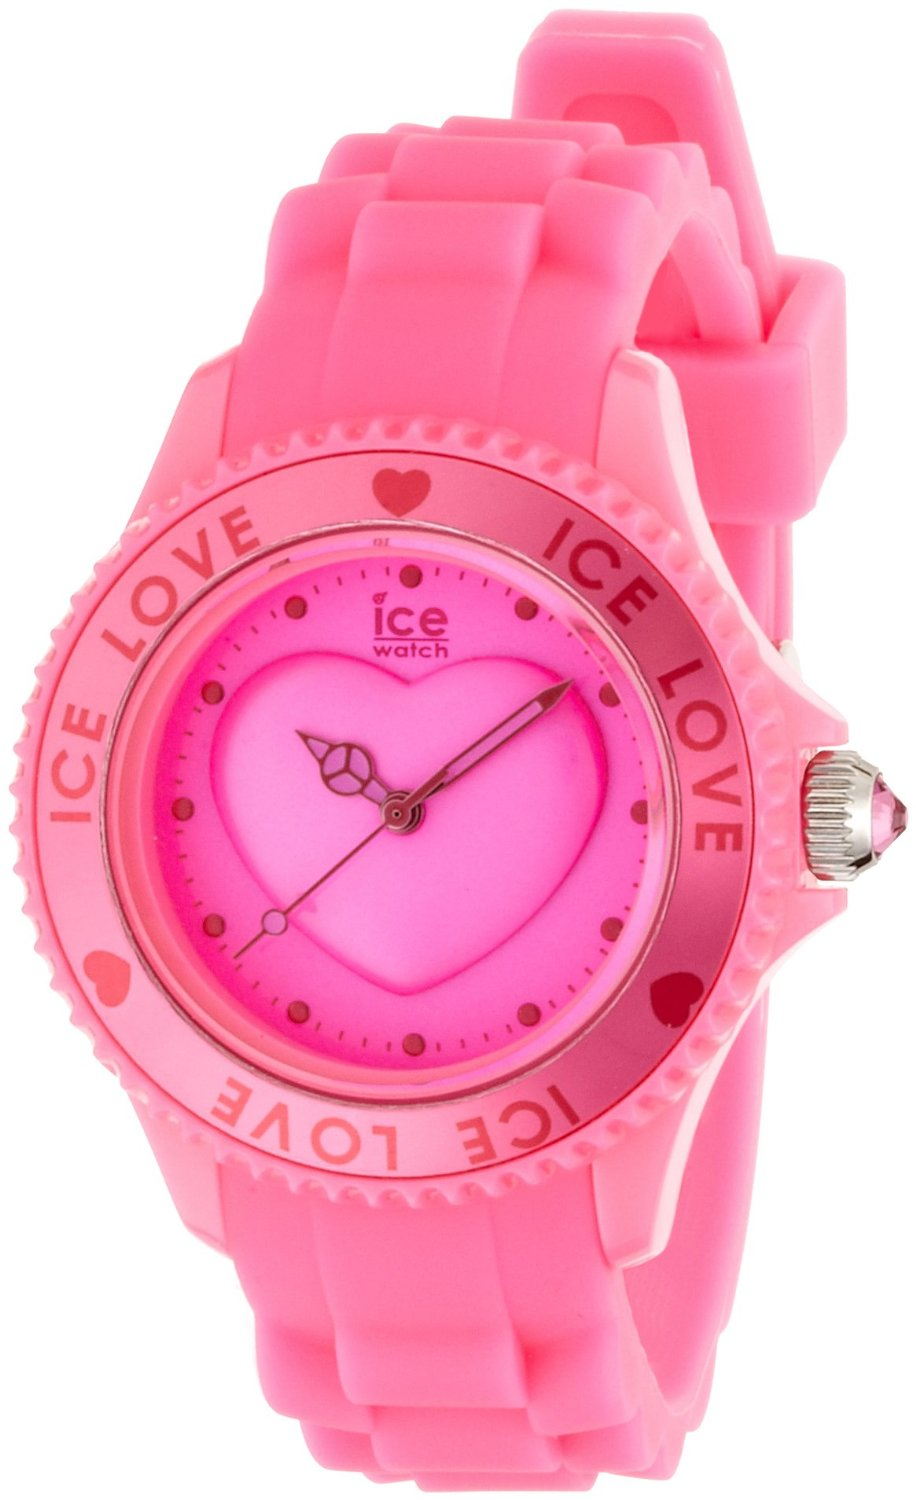 buy online 254fd 8a331 アイス 時計 Ice-Watch Ice-Love Silicone Strap Pink Dial Womens watch  #LO.PK.S.S.10 - 輸入時計専門店 ショップ タイムズ 通販